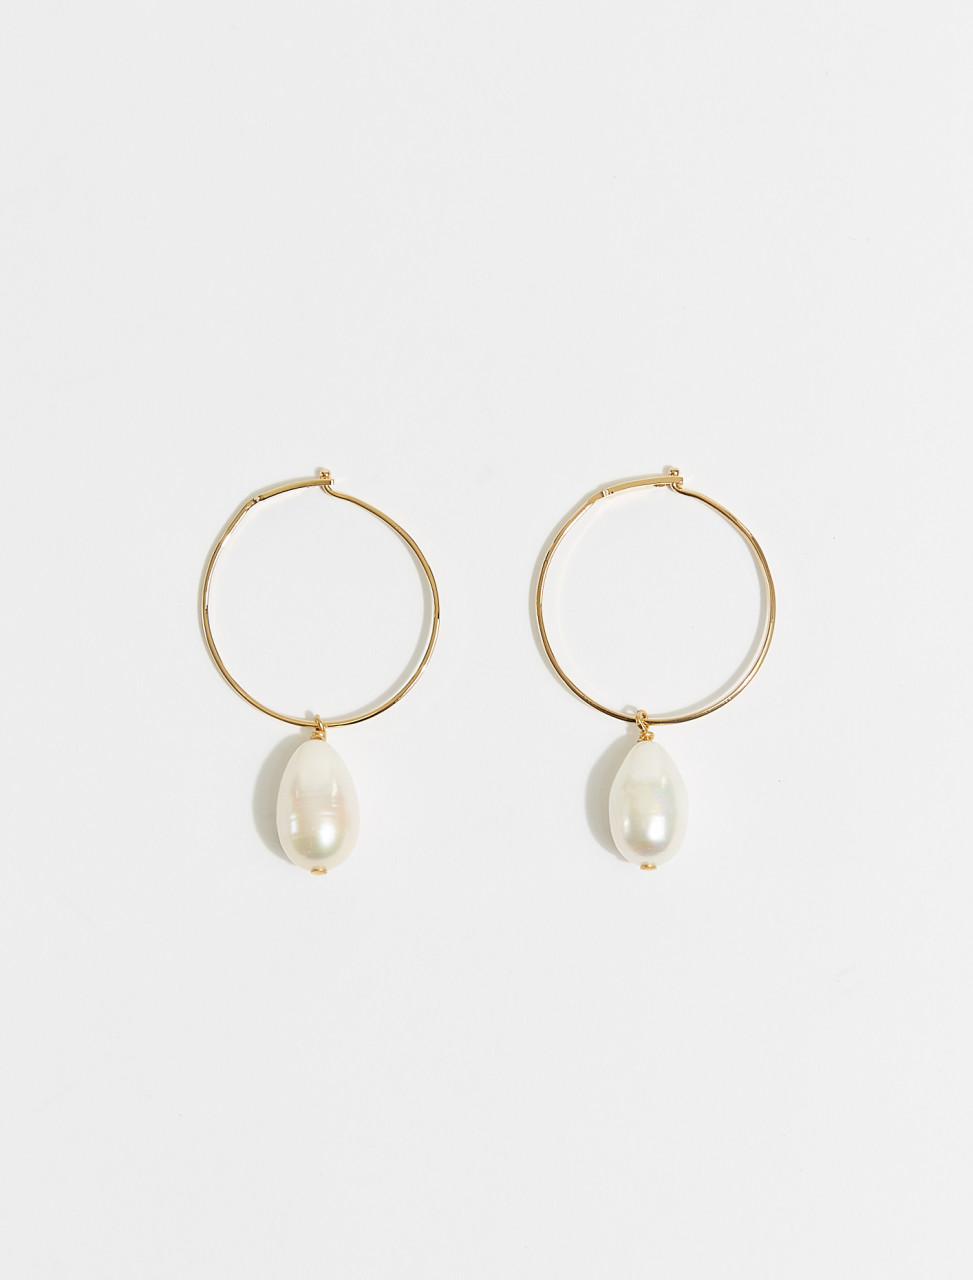 JSWS837140-WSS80039-716 JIL SANDER CORD EARRINGS